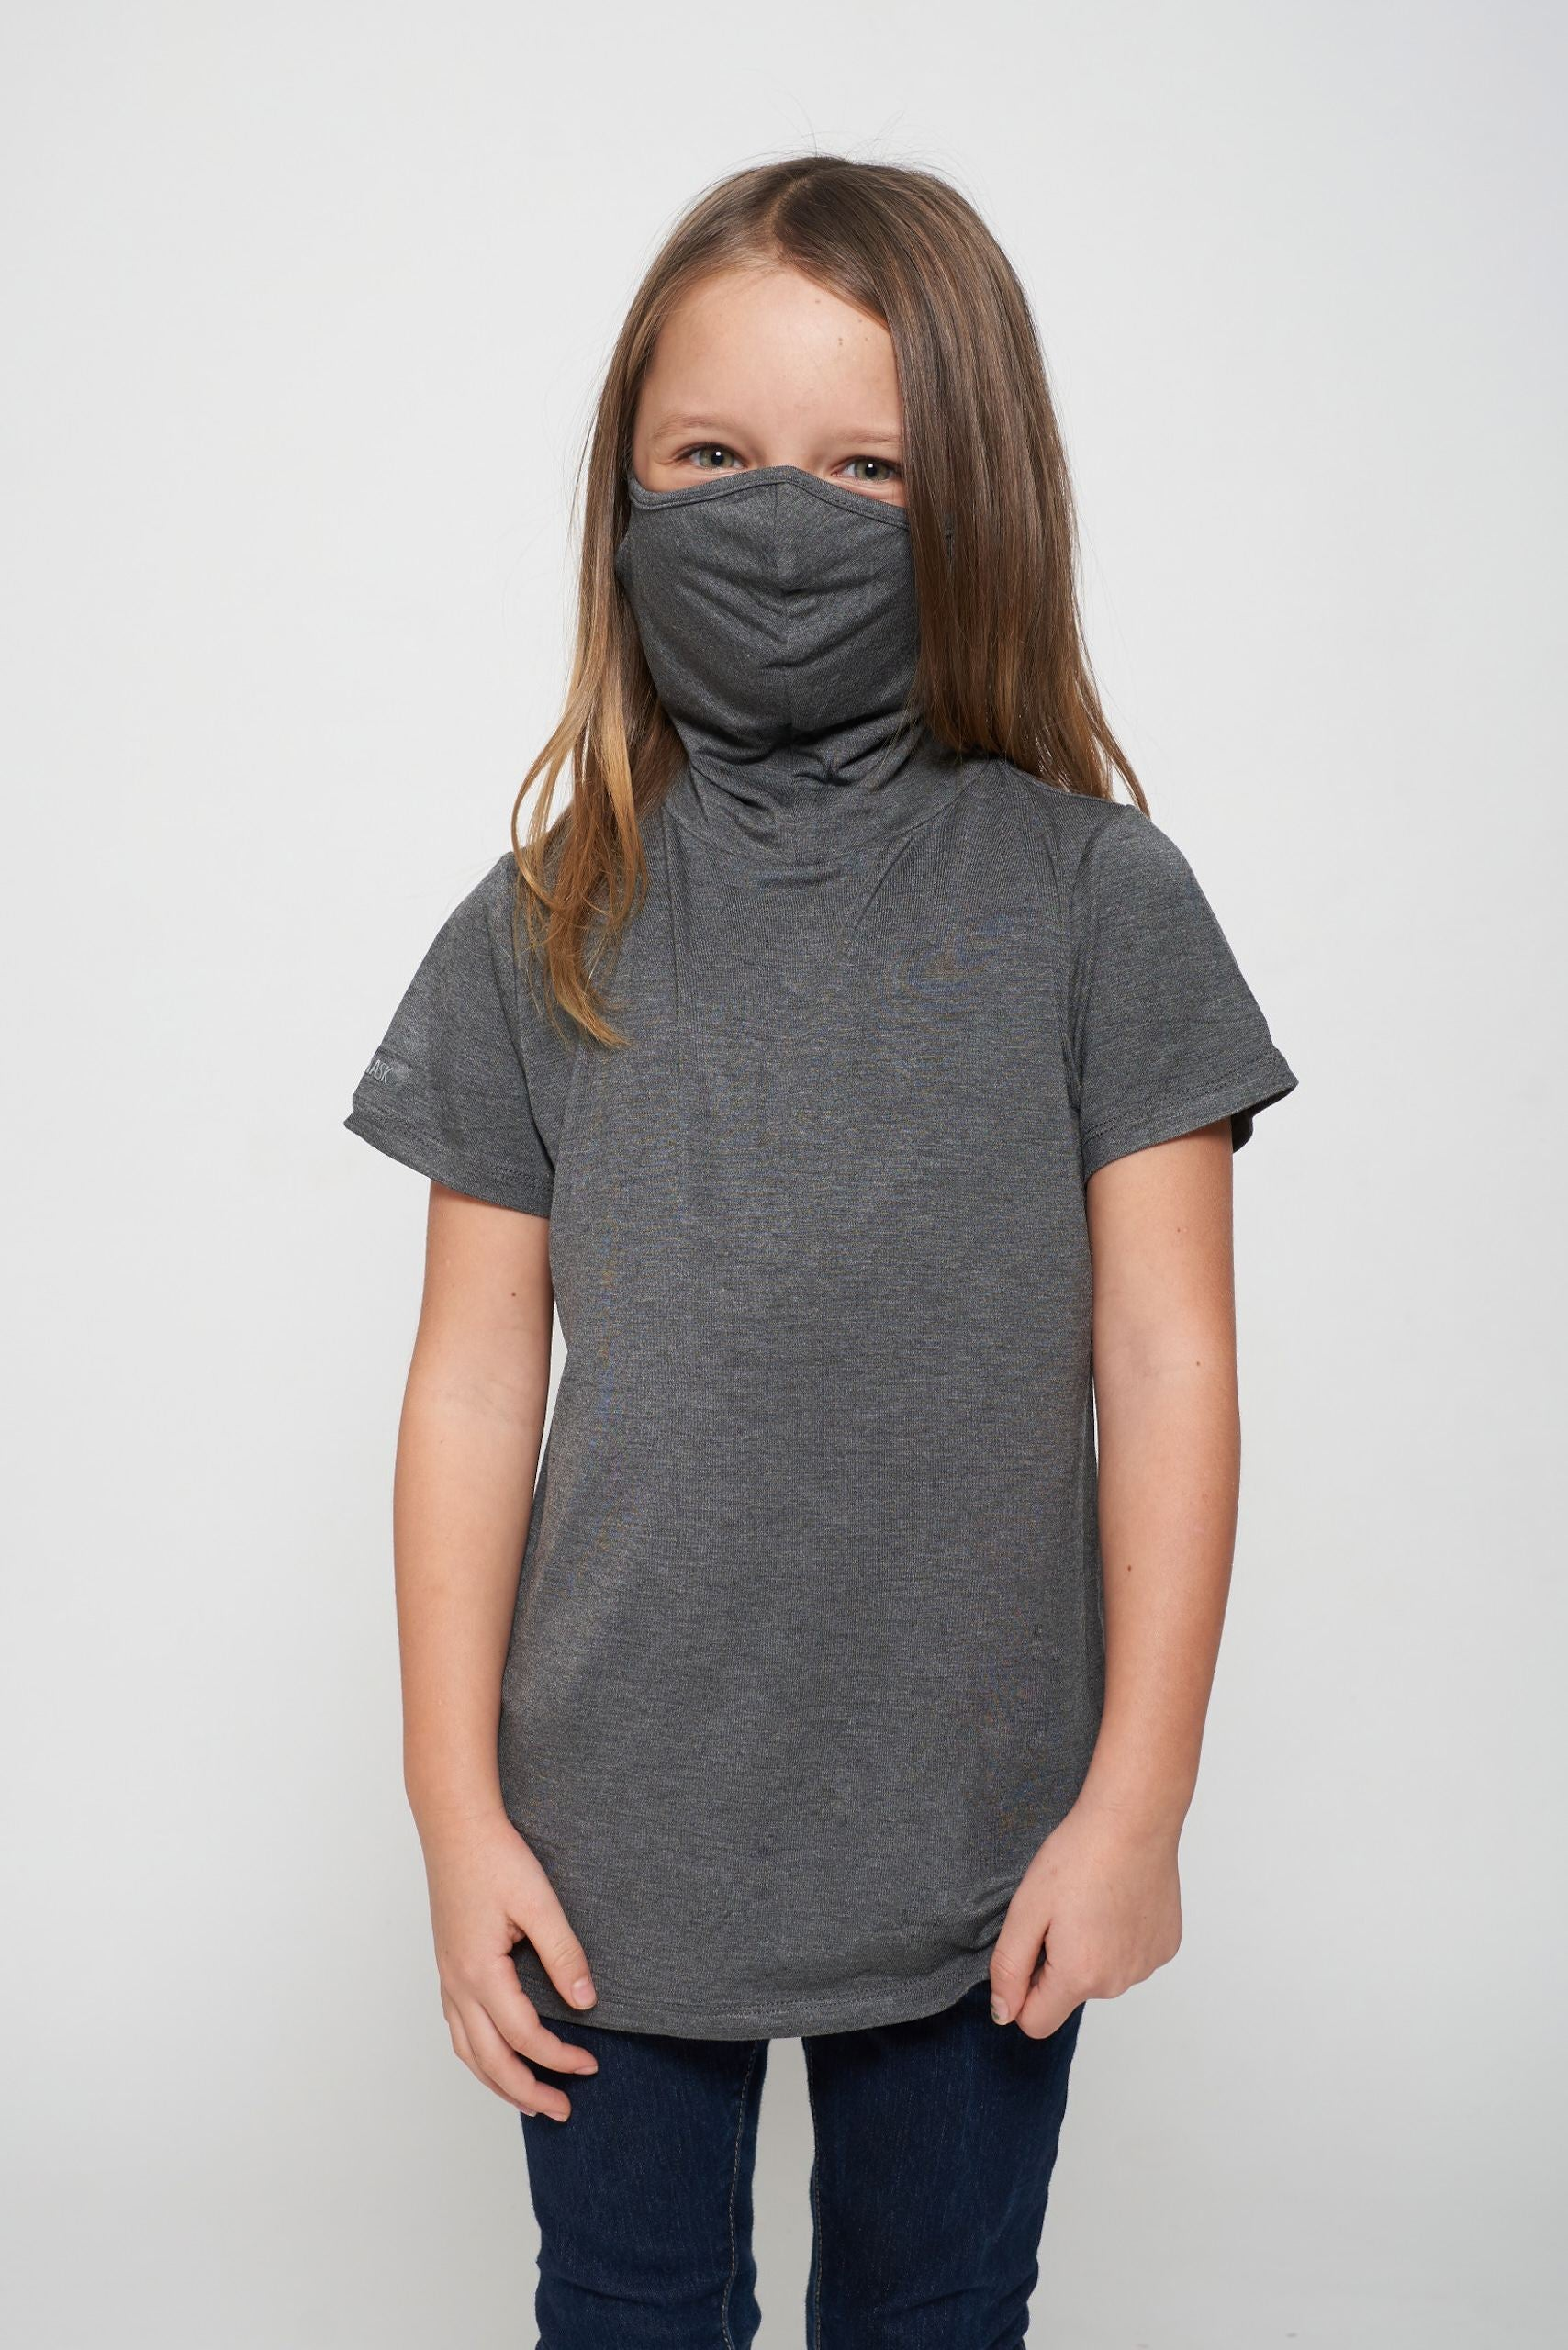 Kids Short Sleeve Dark Heather Gray Modal Shmask™ Earloop Face Mask for Kids and Adults